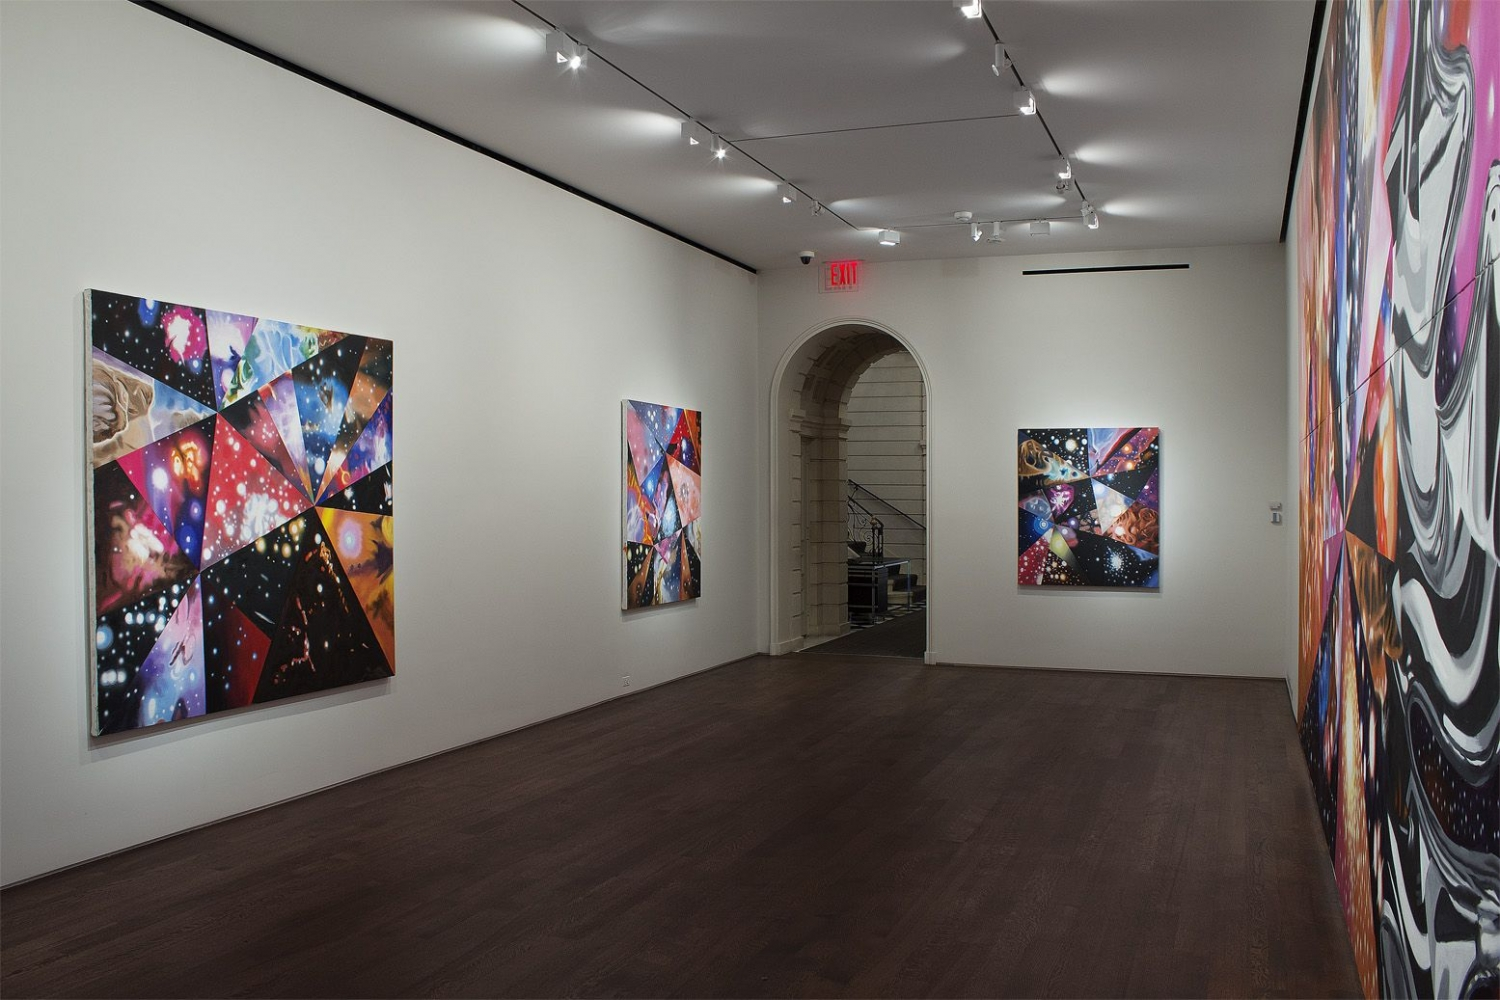 Installation view of James Rosenquist, Multiverse You Are, I Am, September 10 - October 13, 2012.